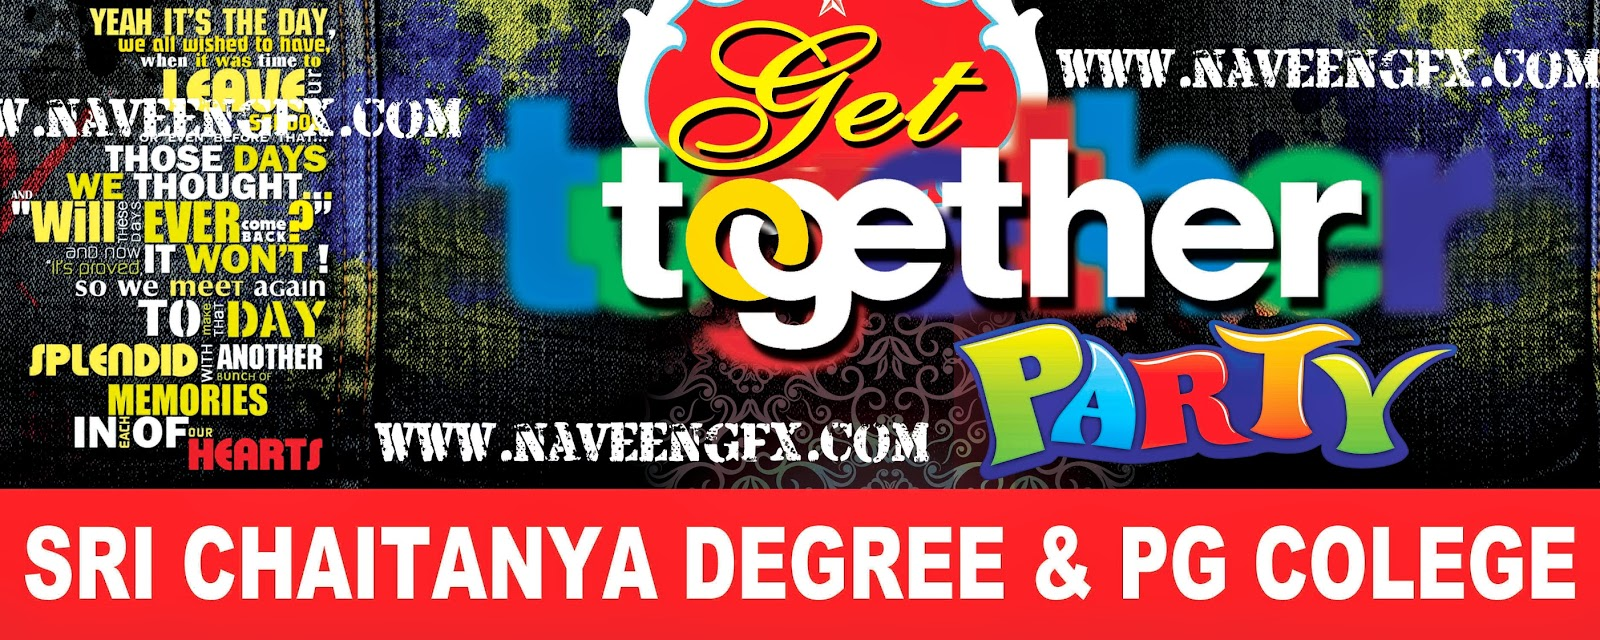 Get Together Party Design Naveengfx